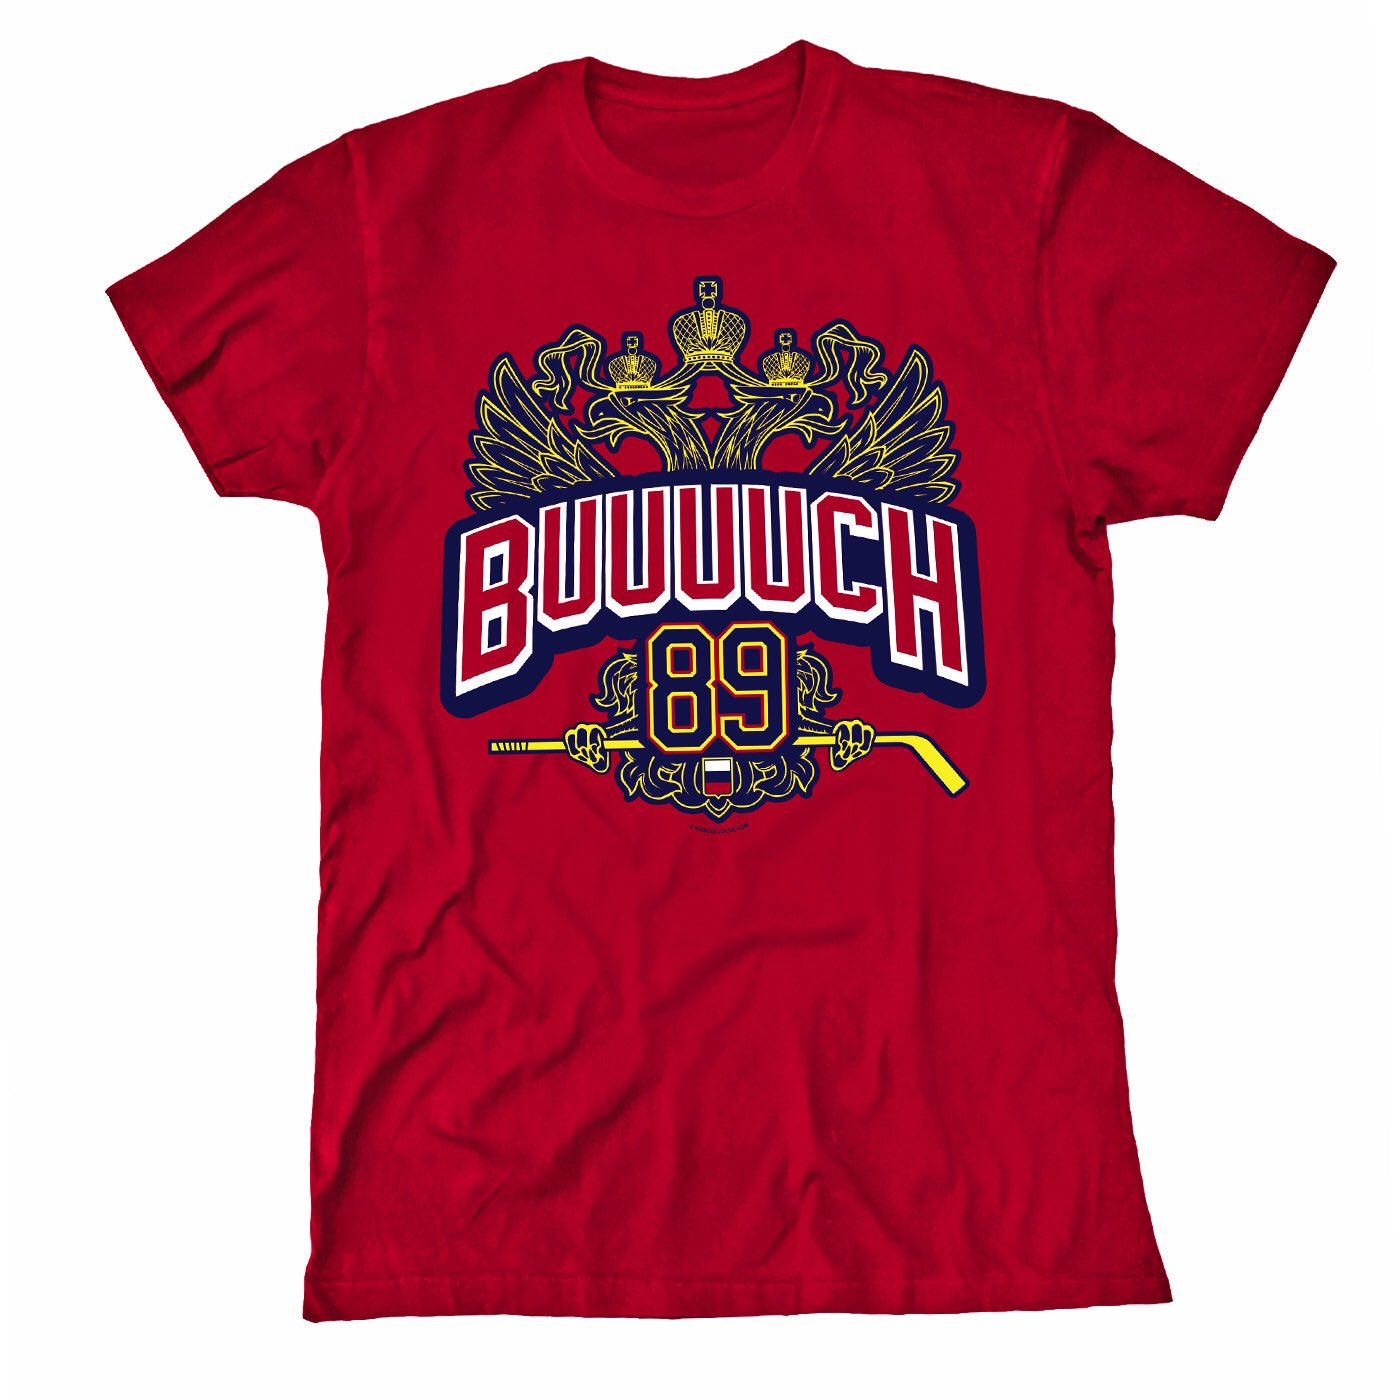 If Buch scores tonight RT for a chance win a 'Buuuuuuuch' tee courtesy of https://t.co/njVG3urY9G! #LetsGoRangers https://t.co/vzIH4xu4R0